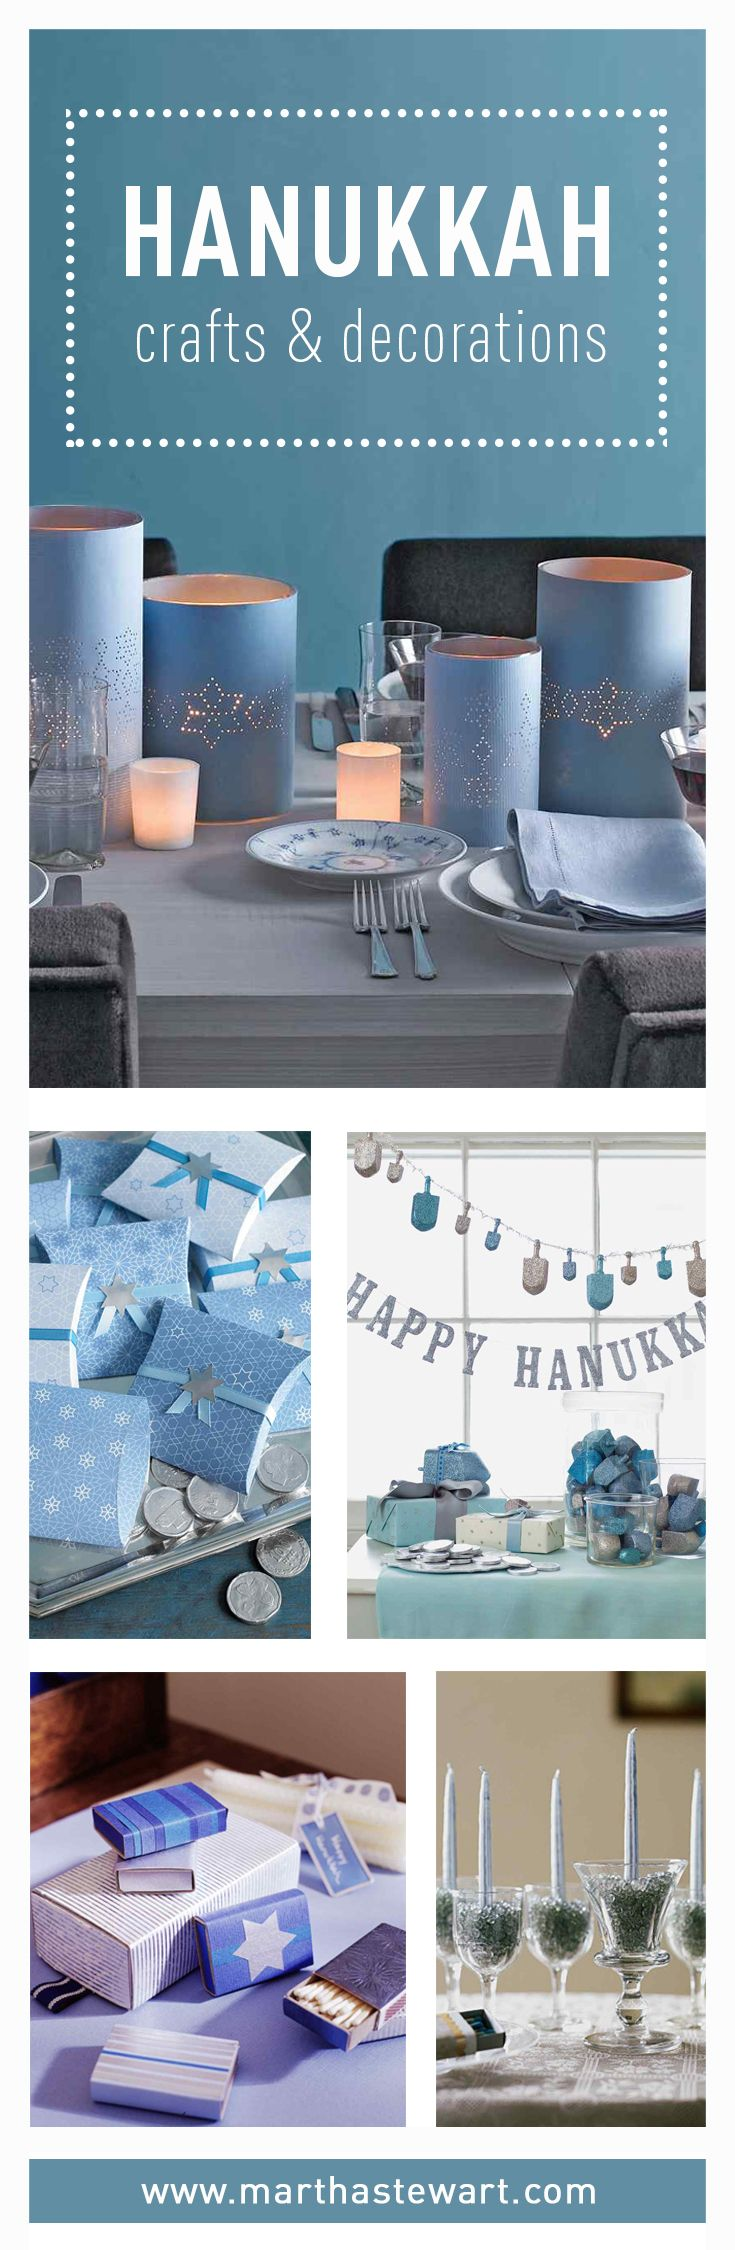 Celebrate Hanukkah with our inspired crafts, gift wrap, favors, and decorations, including dreidels and menorahs. These ideas will help make all eight nights sparkle.